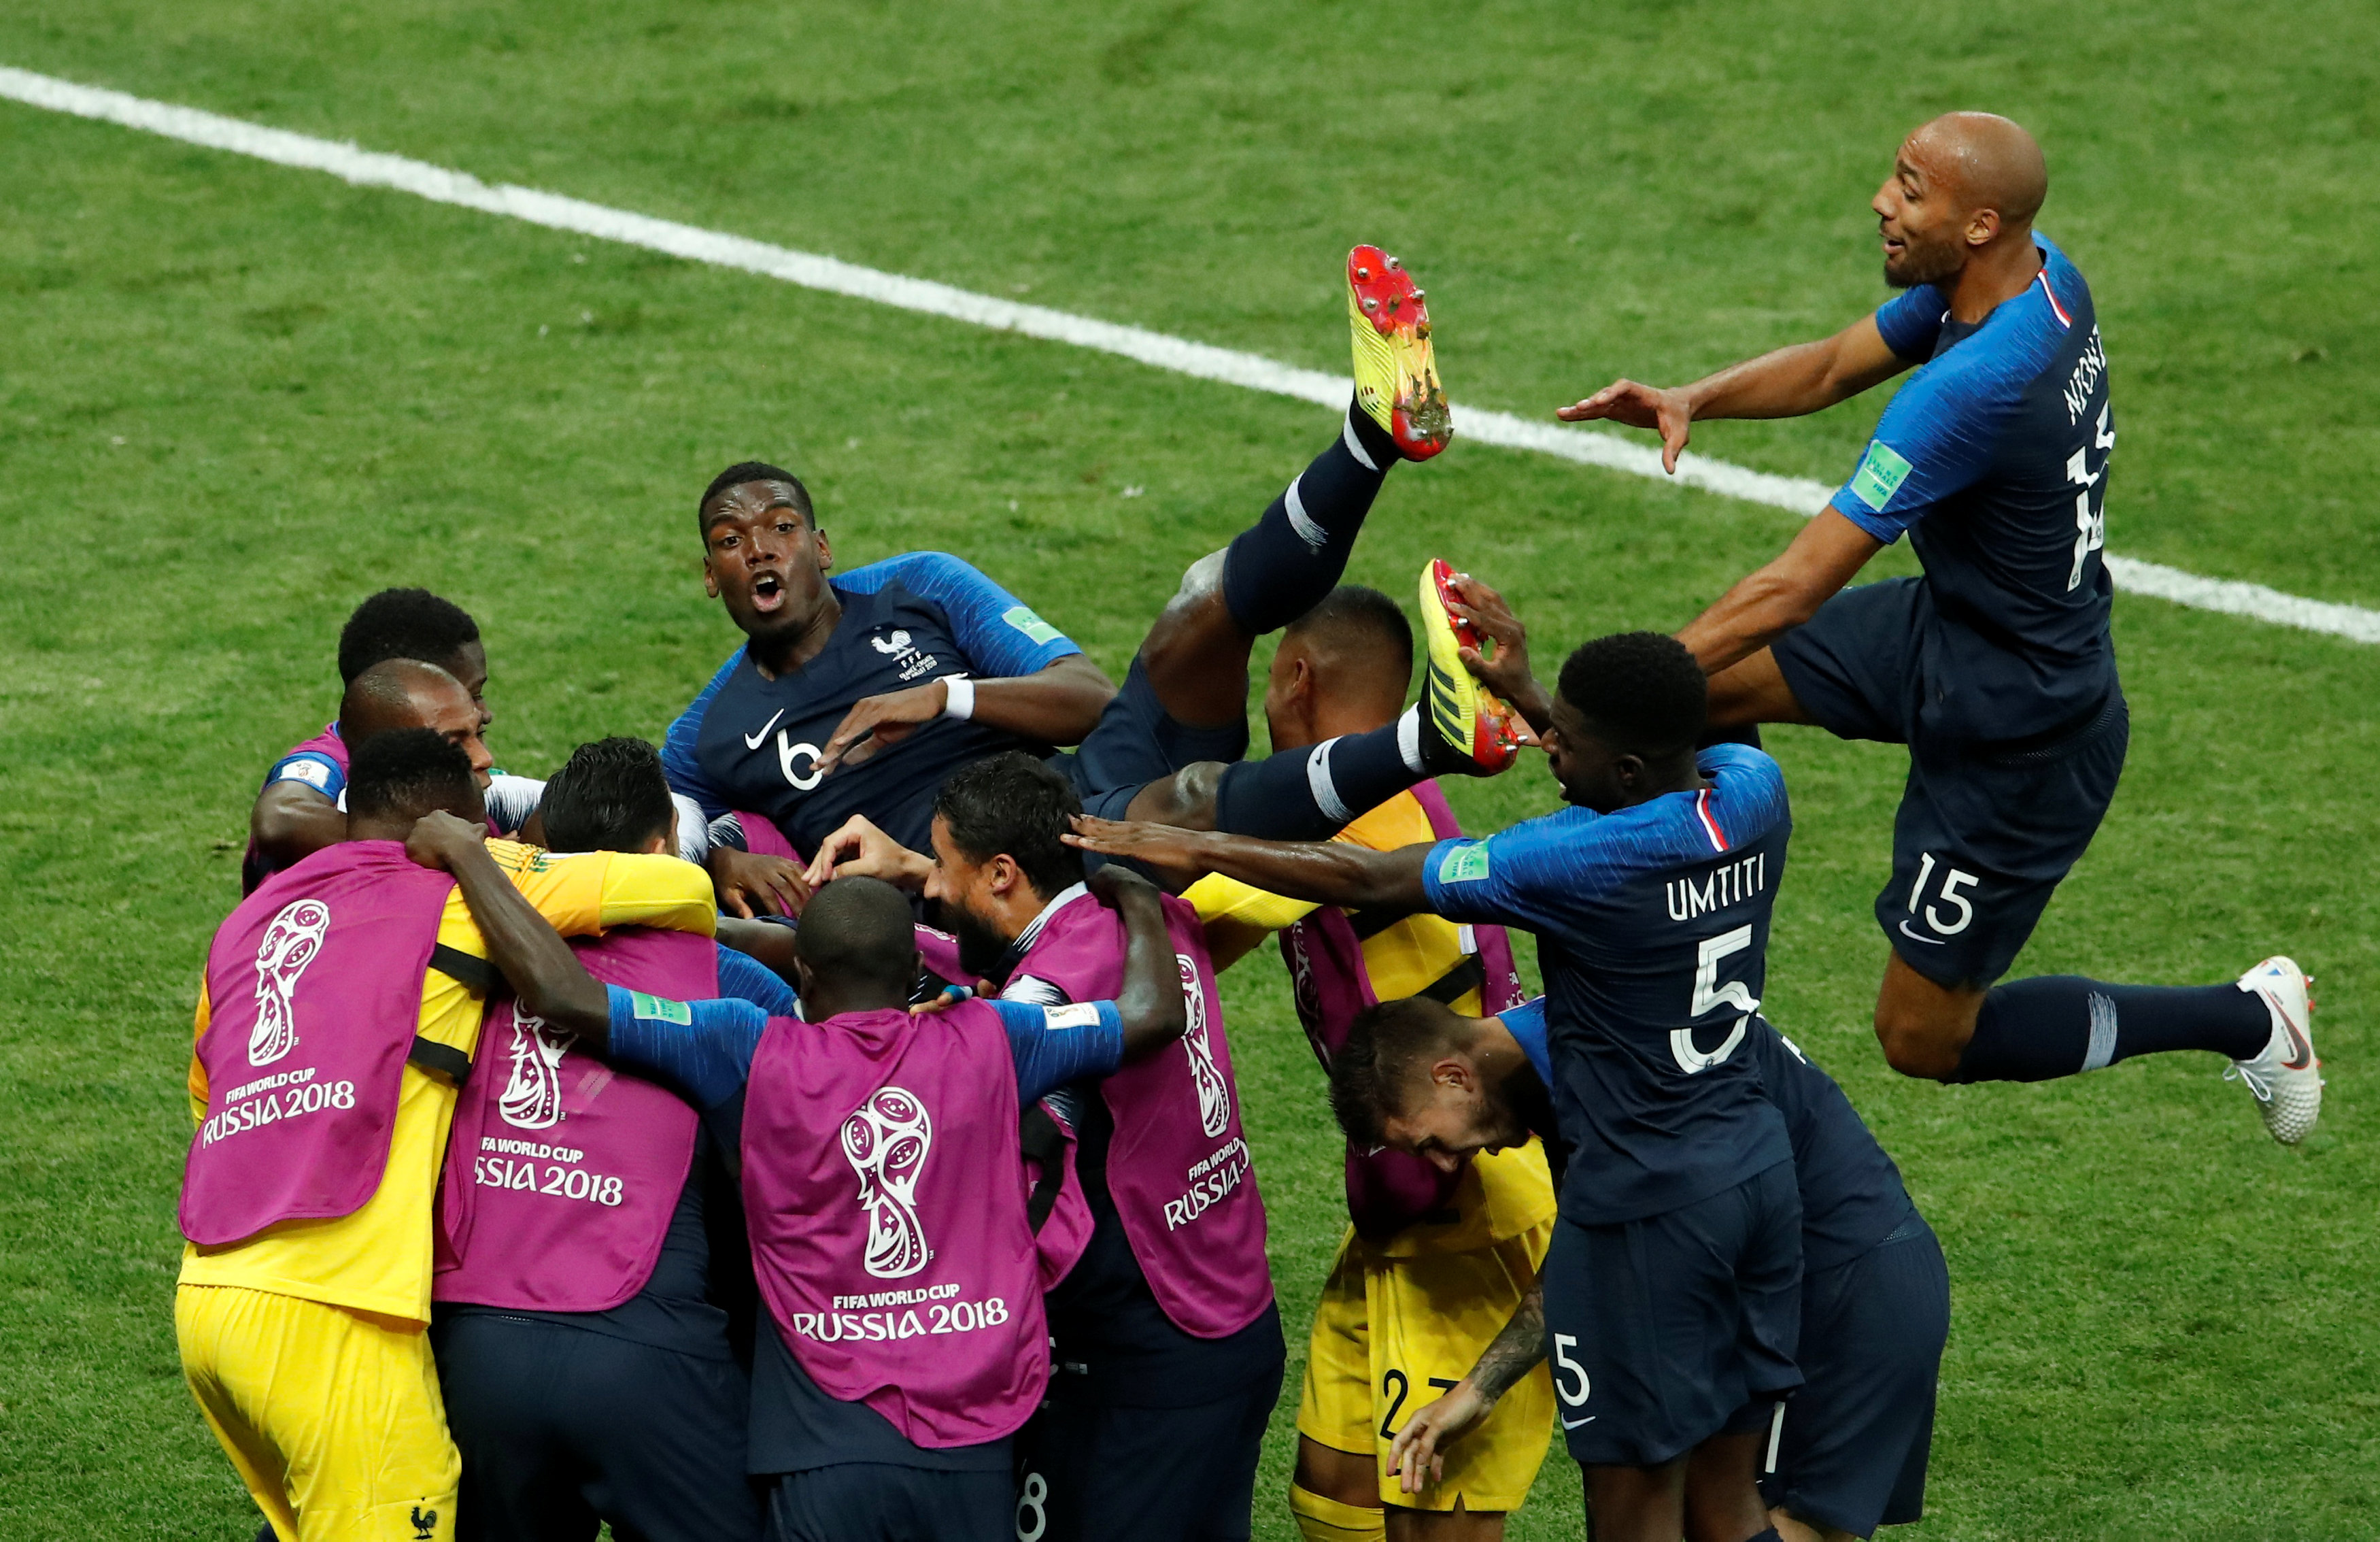 World Cup final 2018: France vs  Croatia score and analysis - The